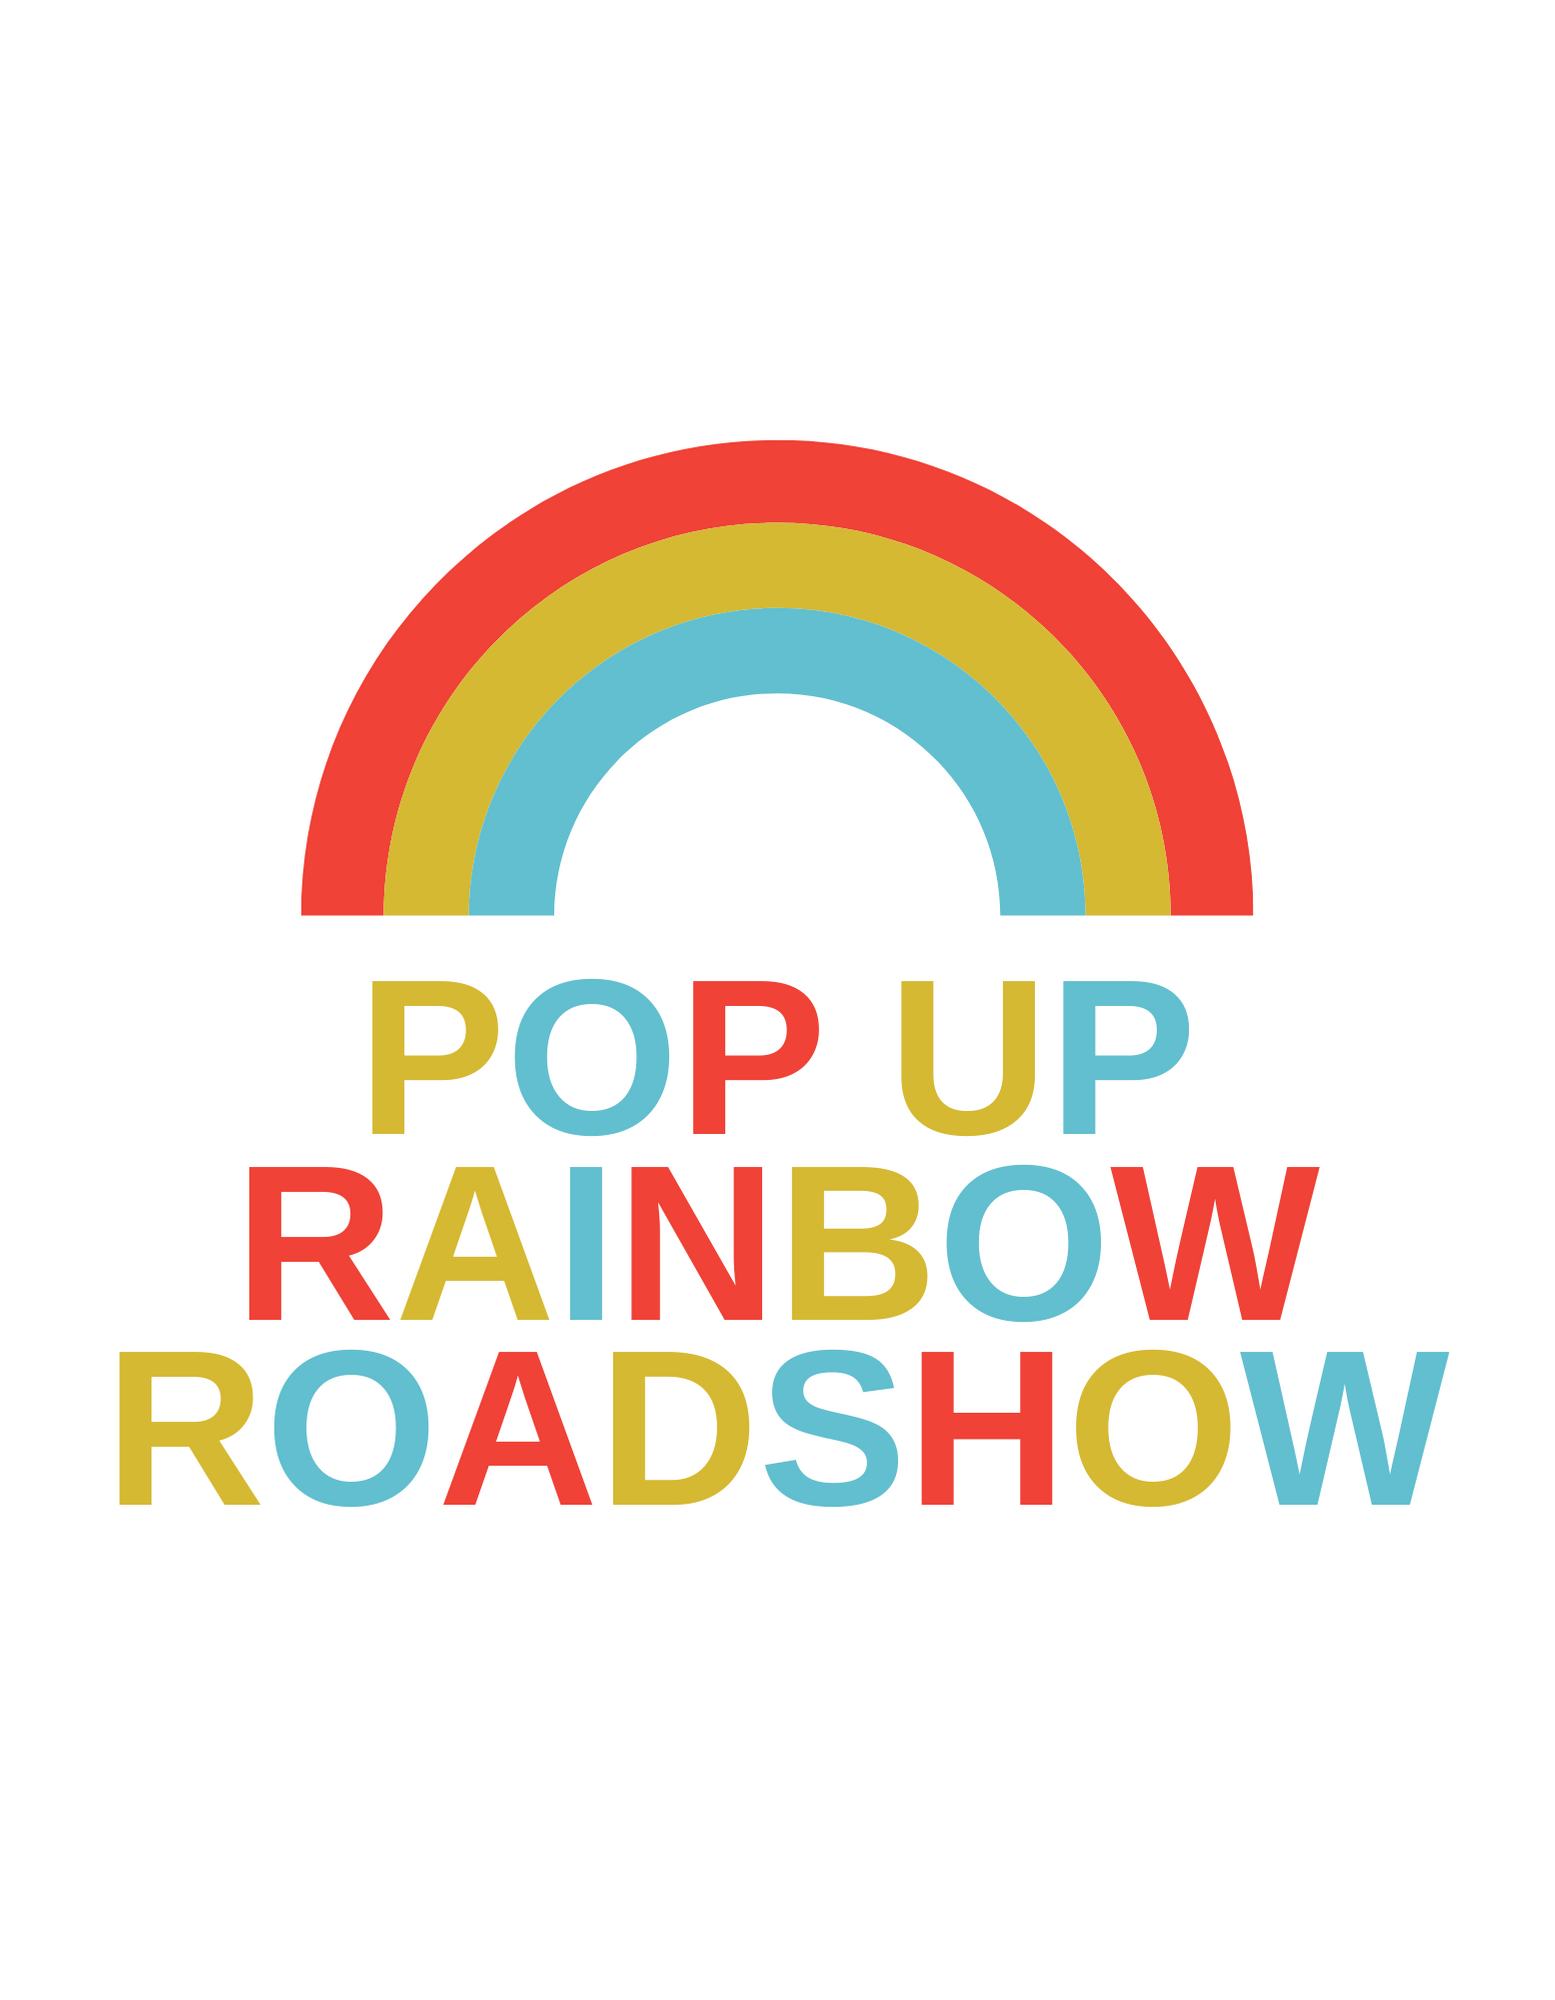 The ISLAND Arts Team is Bringing a Pop-Up Rainbow Roadshow to a Community Near You!